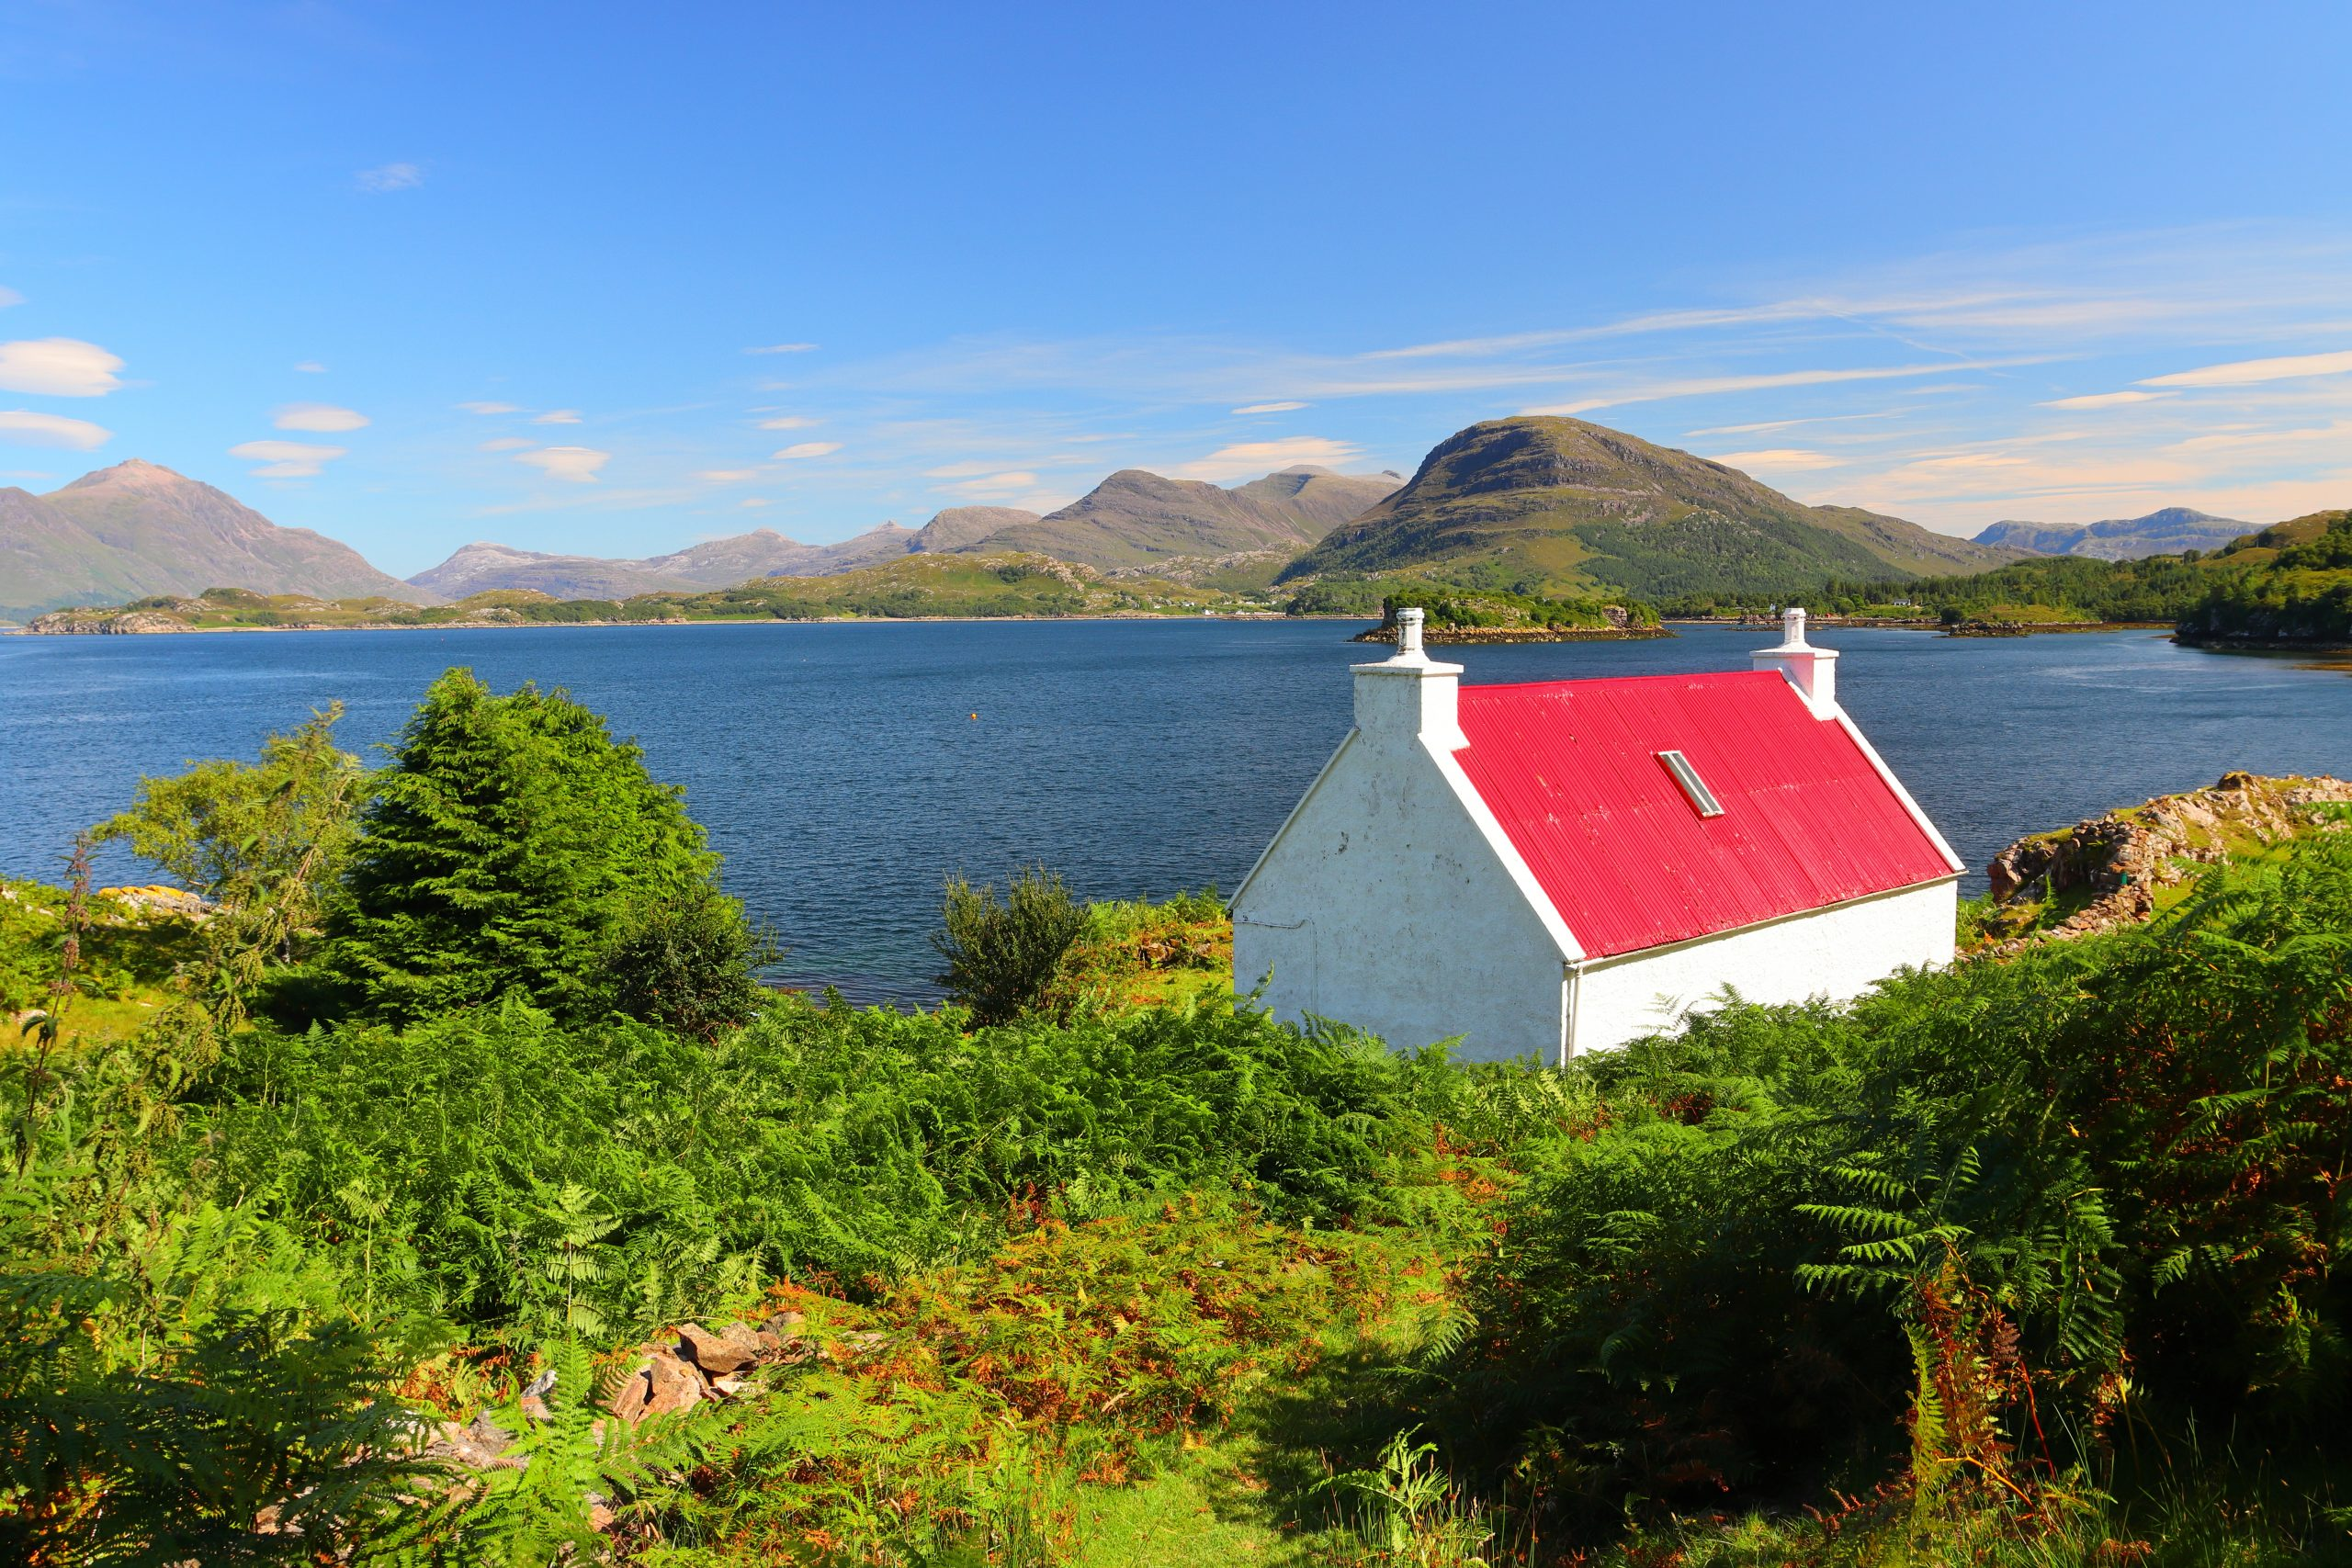 Famous Red rooted cottage at Shieldaig overlooking Loch Torridon